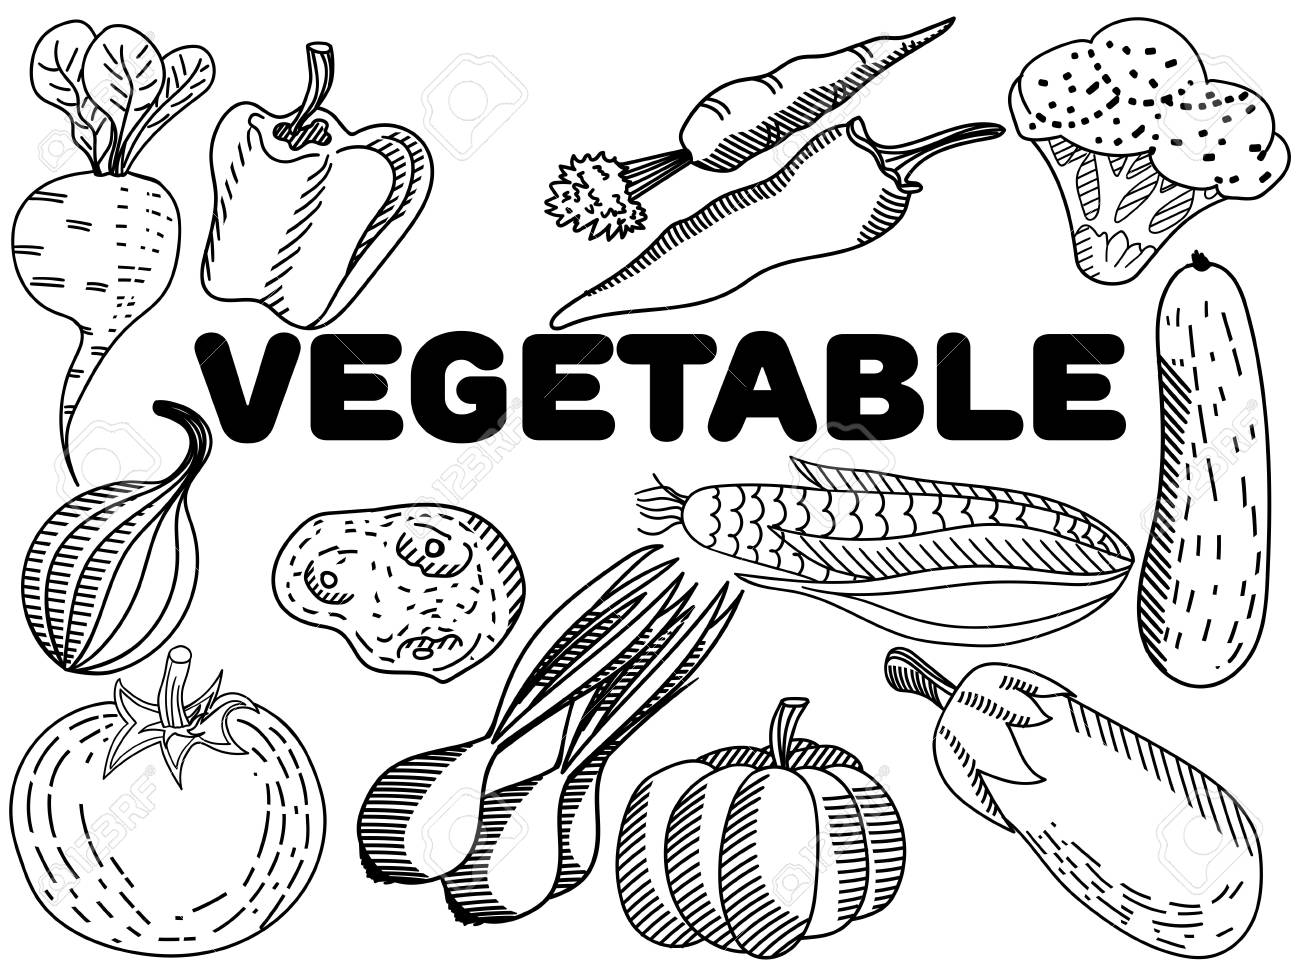 Vegetable Coloring Book For Adults Vector Illustration. Anti-stress ...